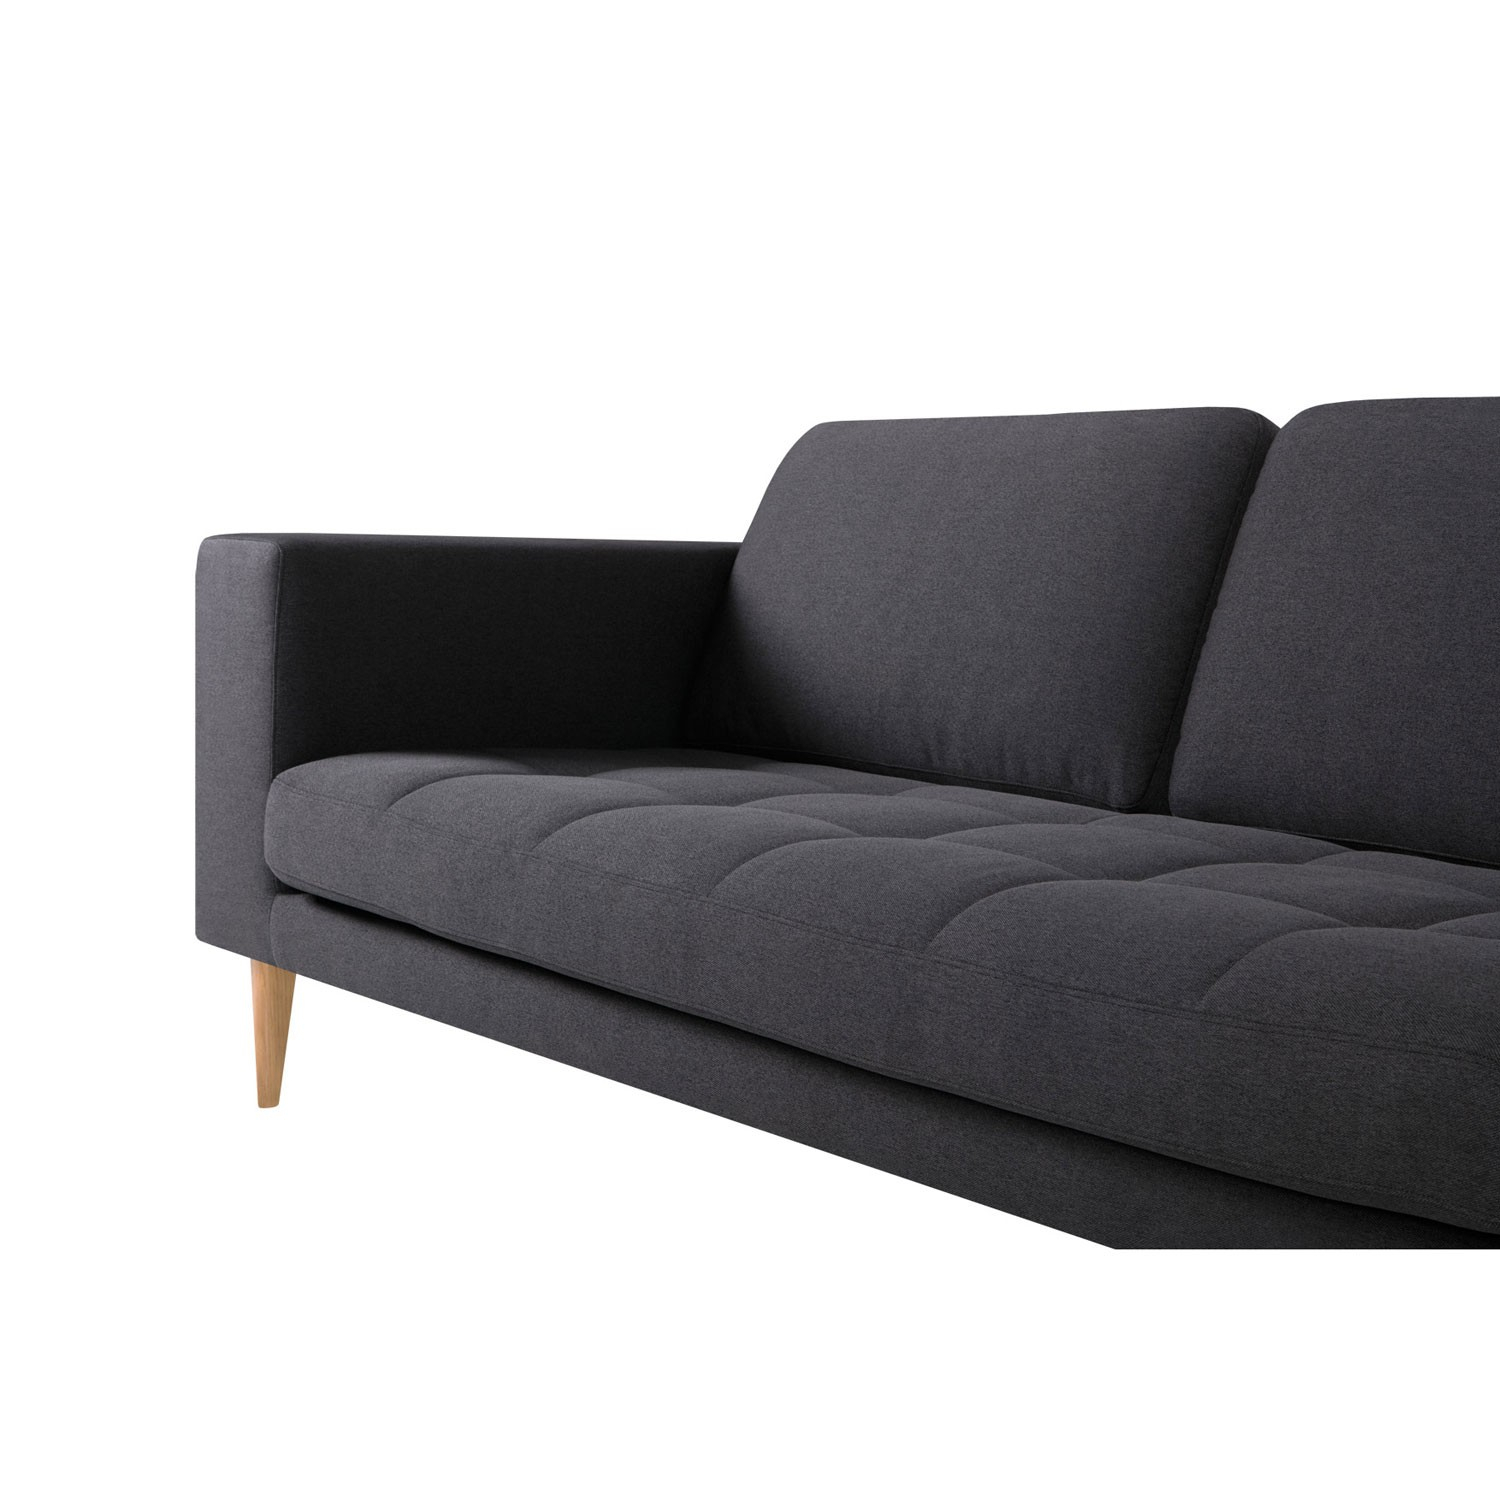 Milano 3 Seater Sofa | Aif London With London Dark Grey Sofa Chairs (Image 14 of 20)